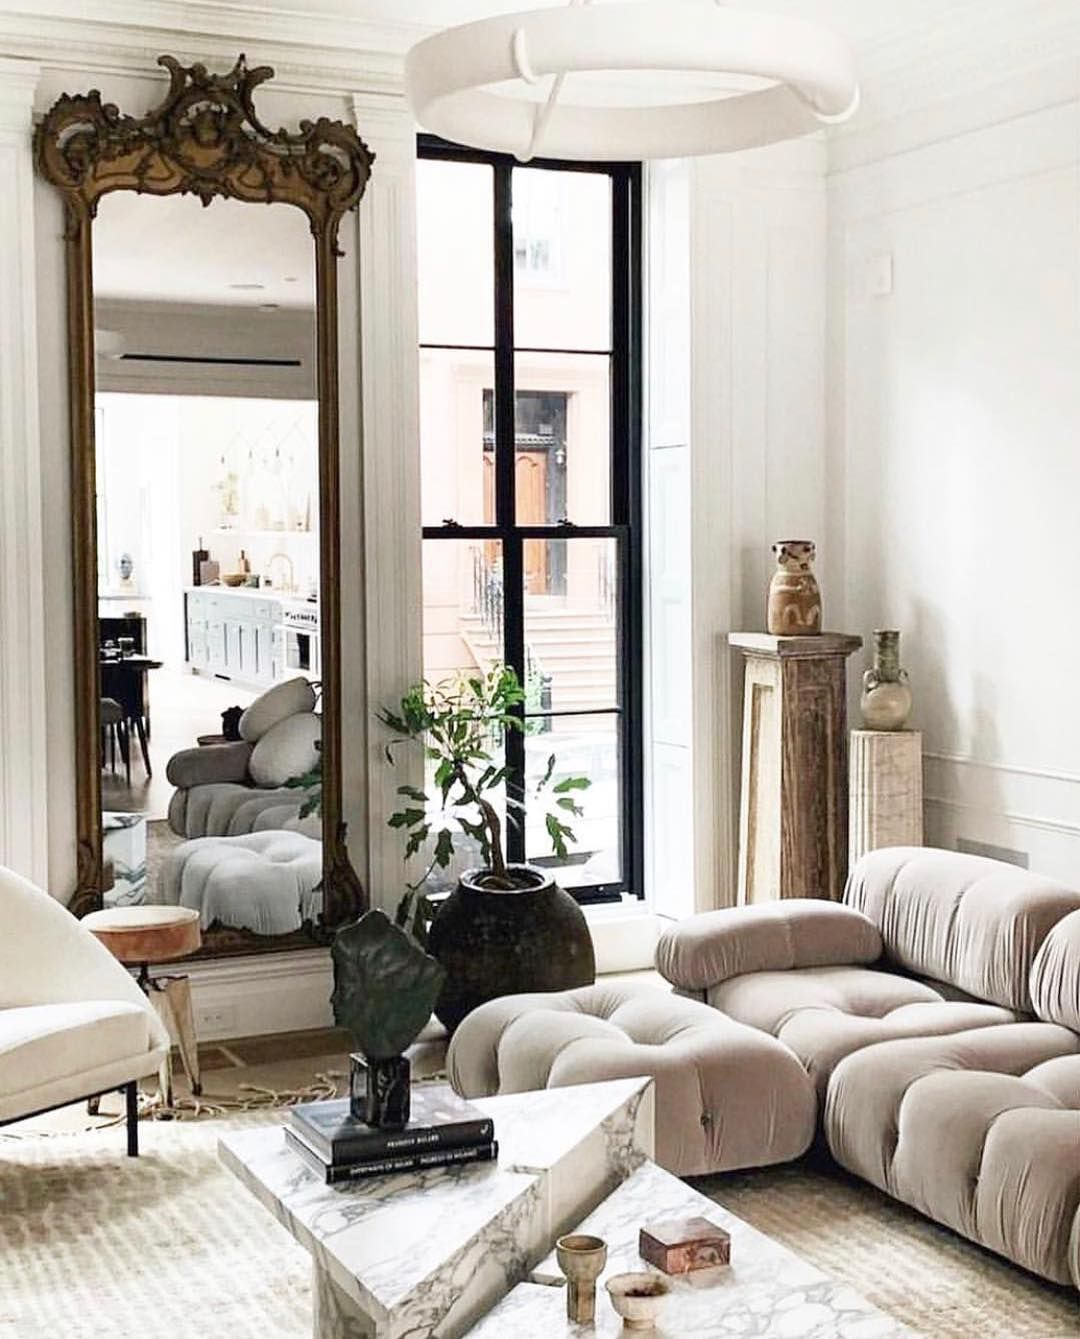 This Space Has Me Ready For The Weekend Design By Eyeswoon